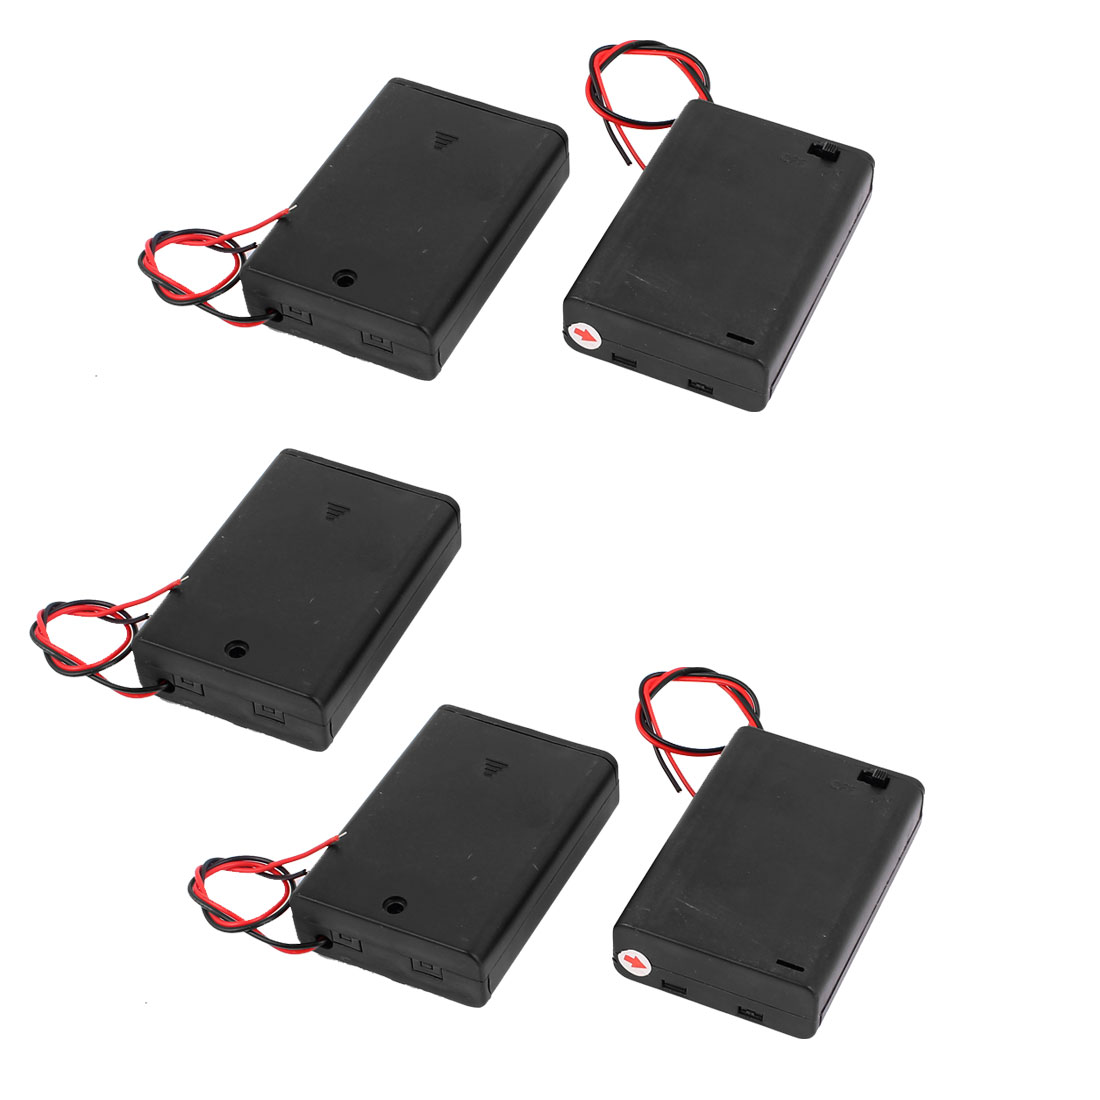 5PCS ON/OFF Switch 2 Wires Batteries Holder Box w Cover for 3 x 1.5V AA Battery